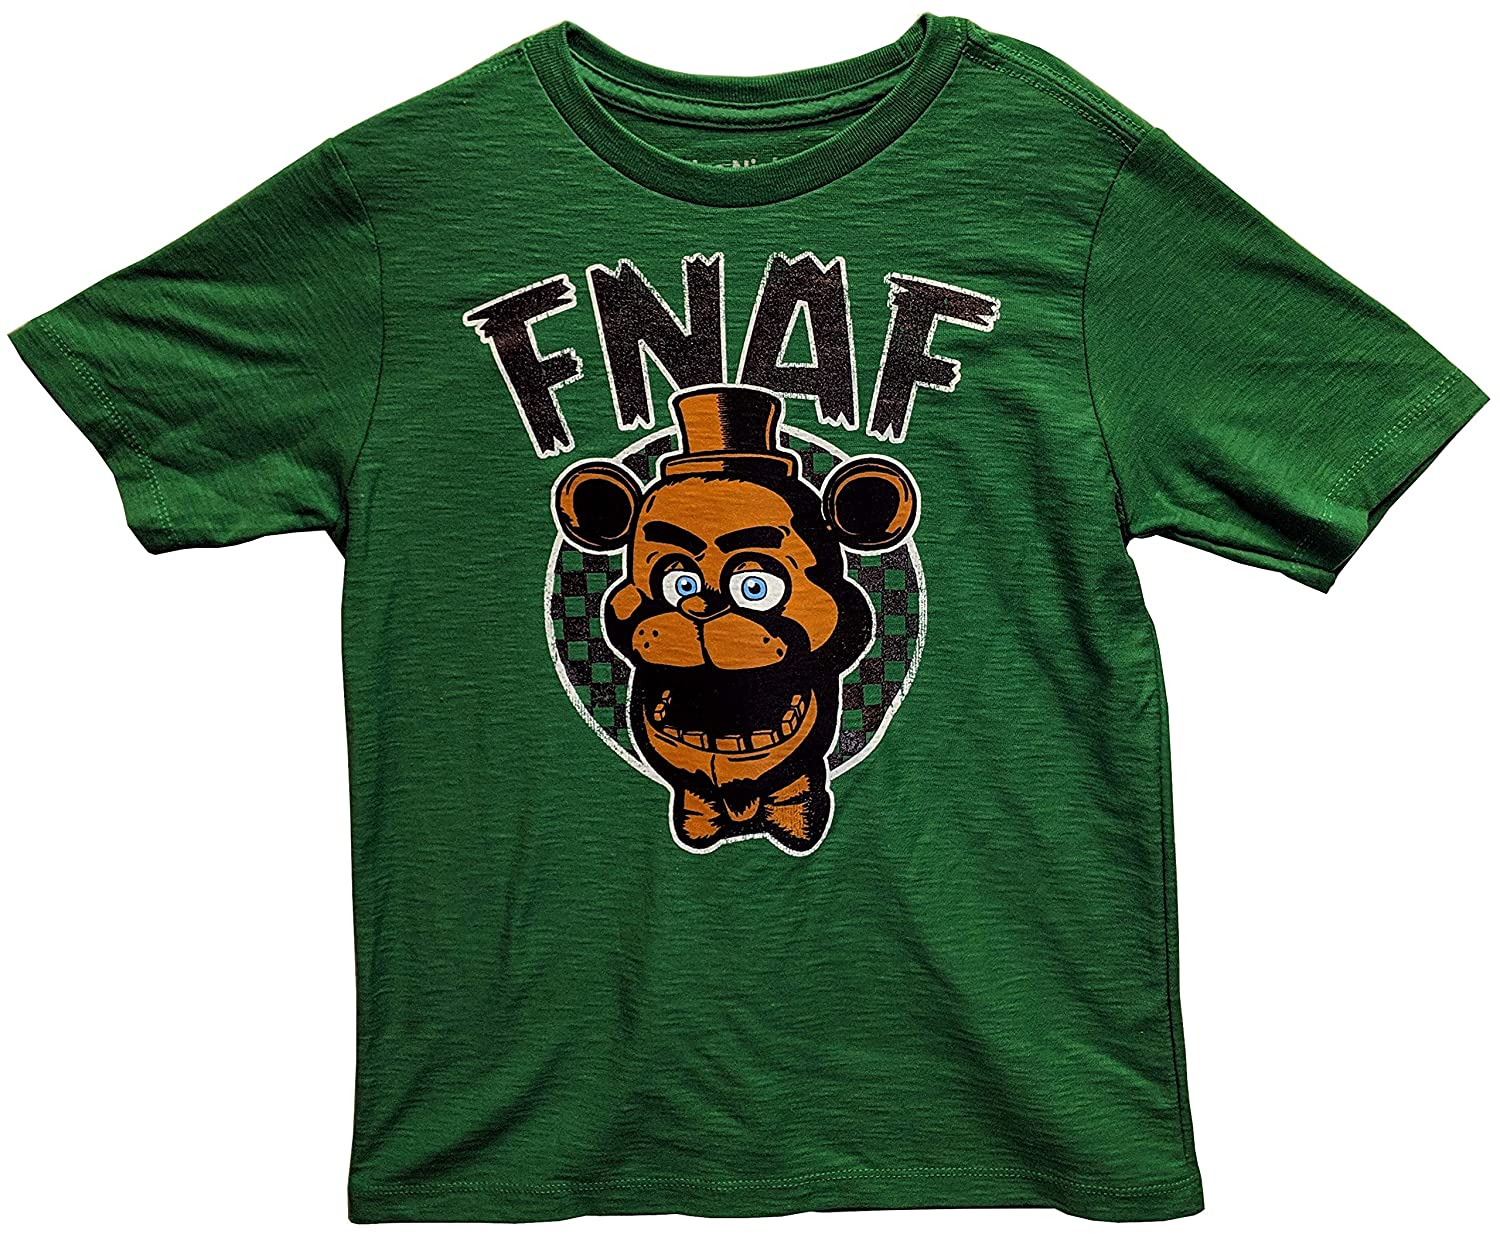 Five Nights at Freddys Shirt Green Tee for Boys